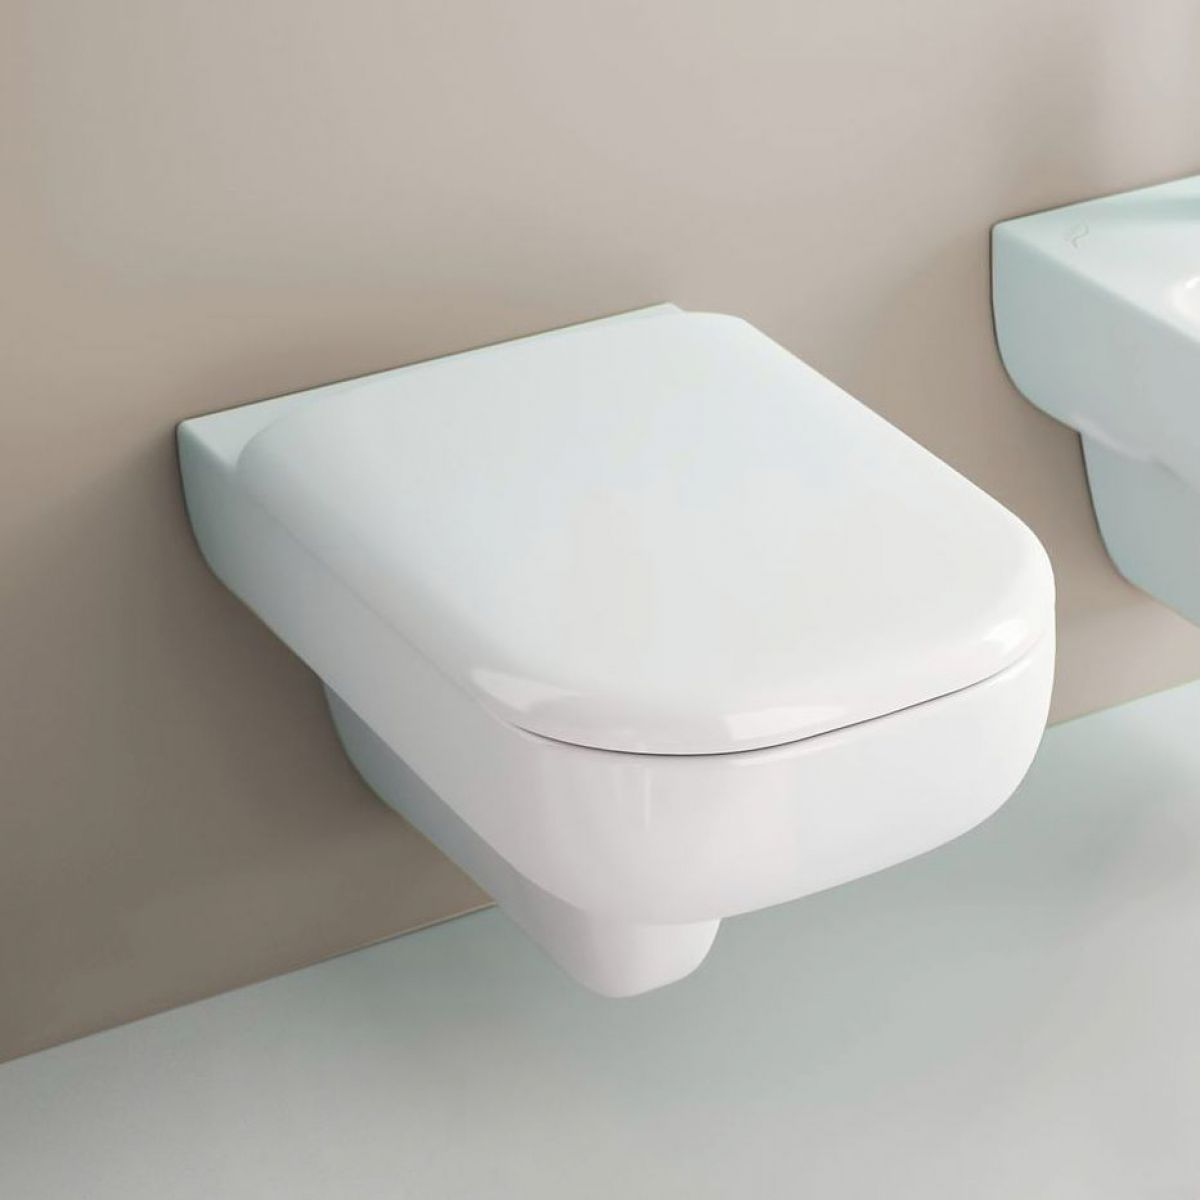 Geberit Smyle Wall Hung Toilet